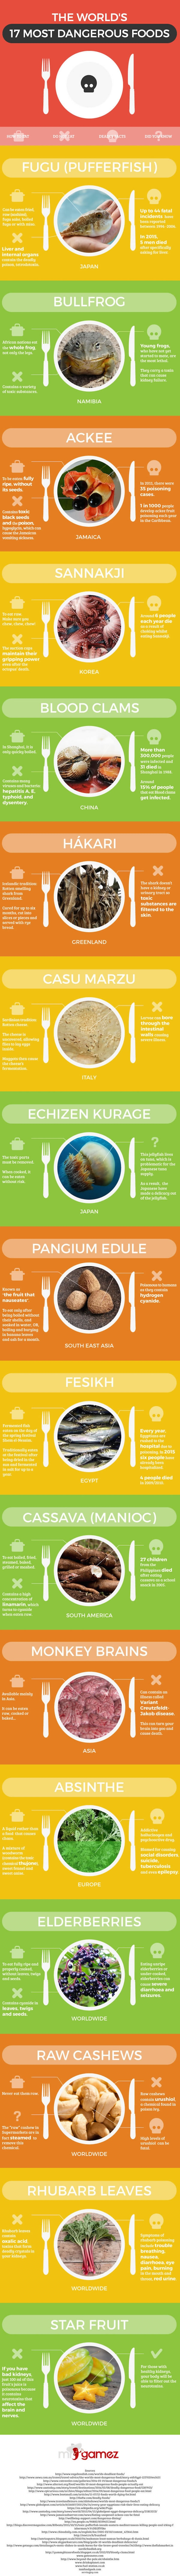 World's most dangerous foods people actually eat